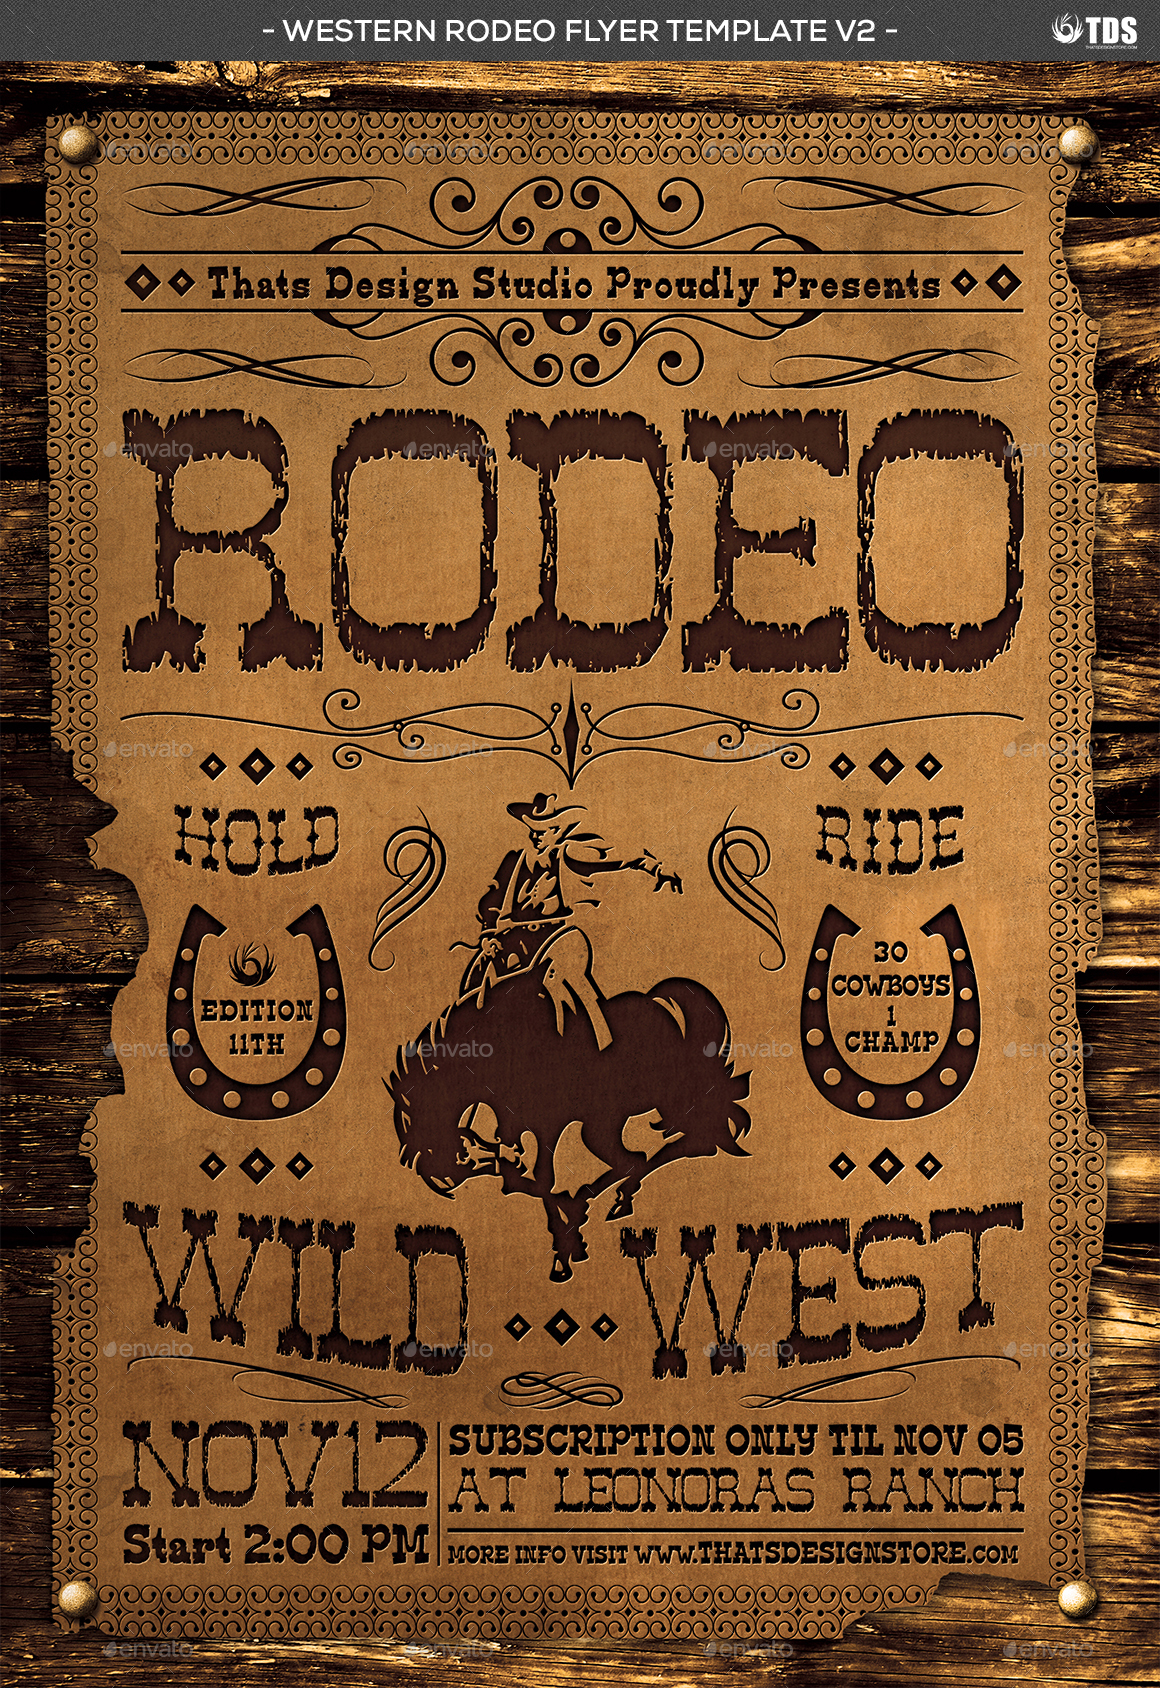 04_Western Rodeo Flyer Template V2 on professional business, for personal, printable resignation, printable block, job cover, great resume cover, printable fancy alphabet, printable alphabet, printable large alphabet, printable christmas, printable lowercase,